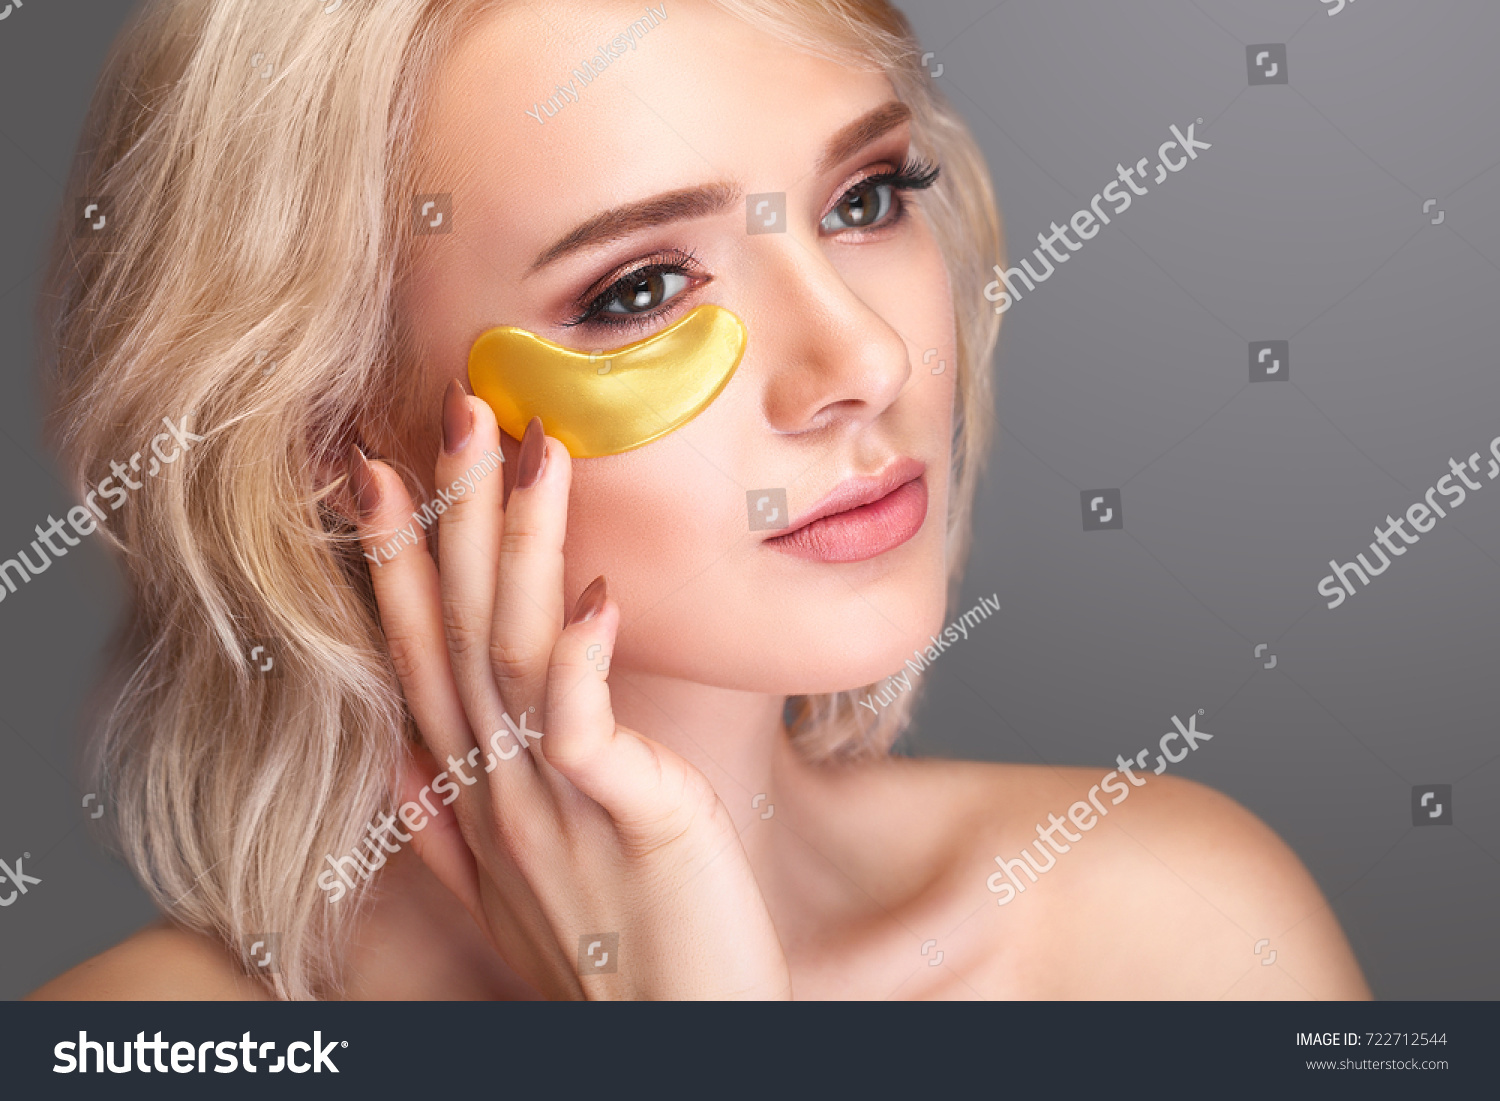 Woman Beauty Face Mask Under Eyes Stock Photo Edit Now 722712544